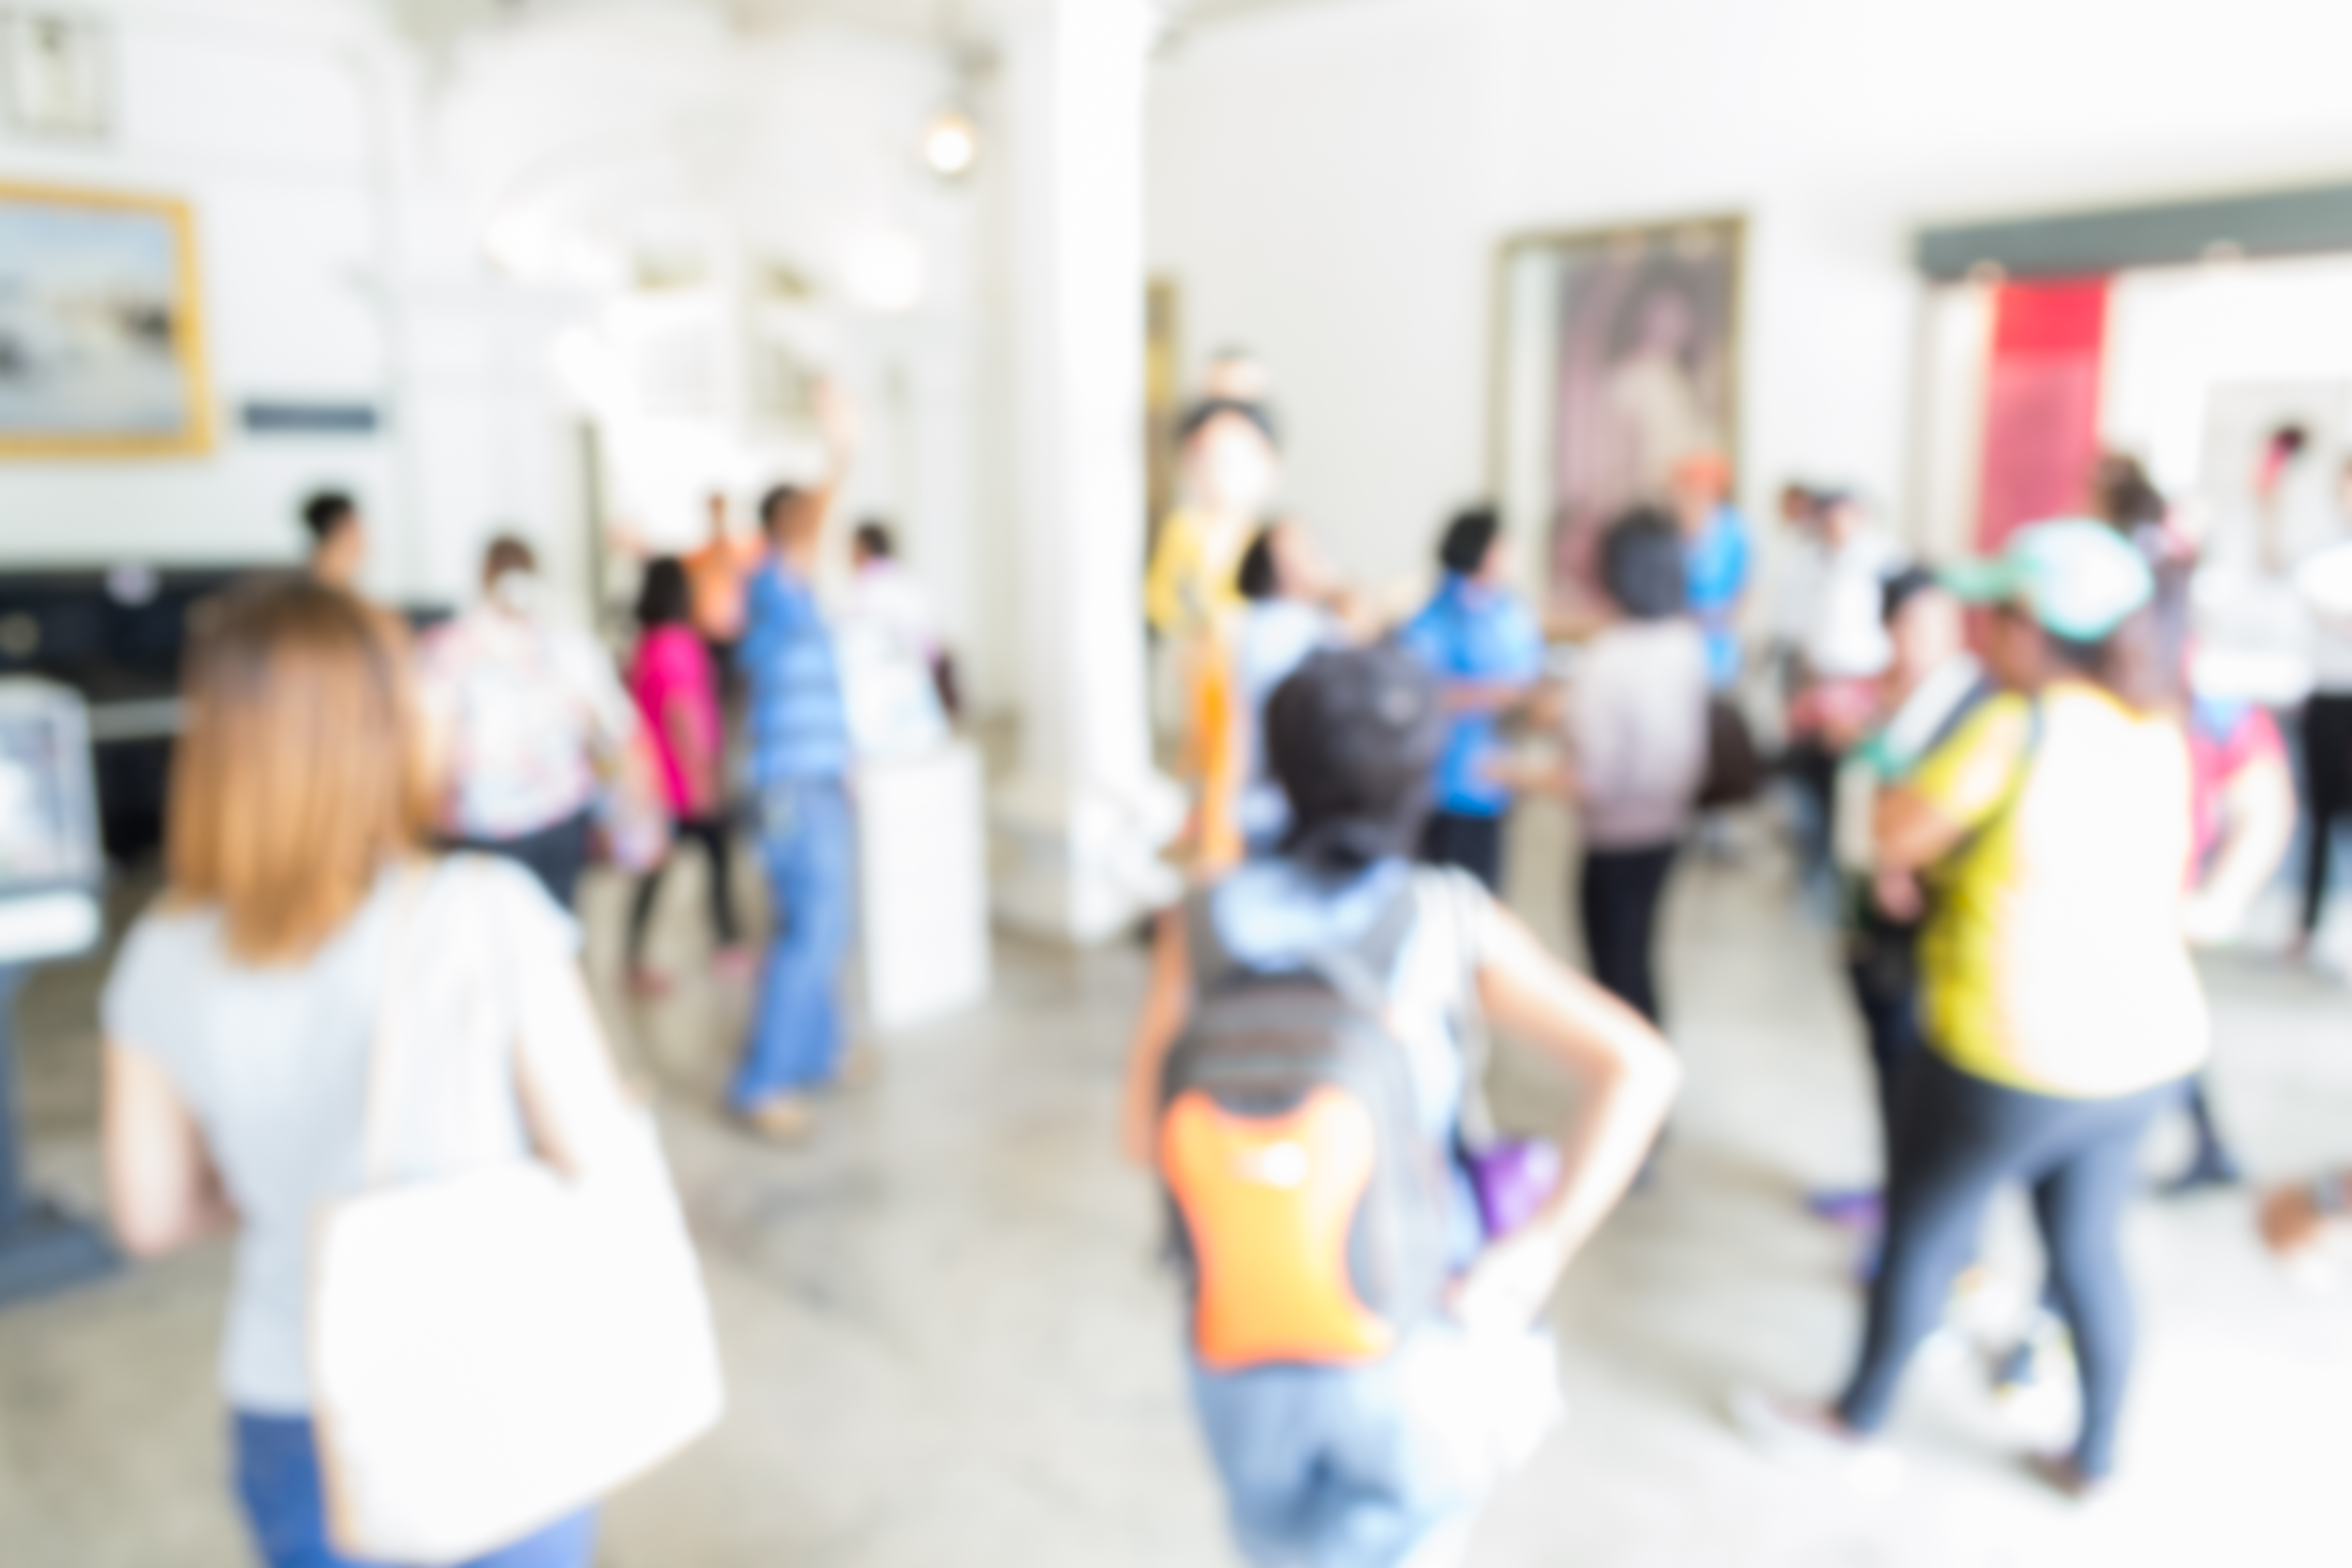 Blurred tourist walking in the museum